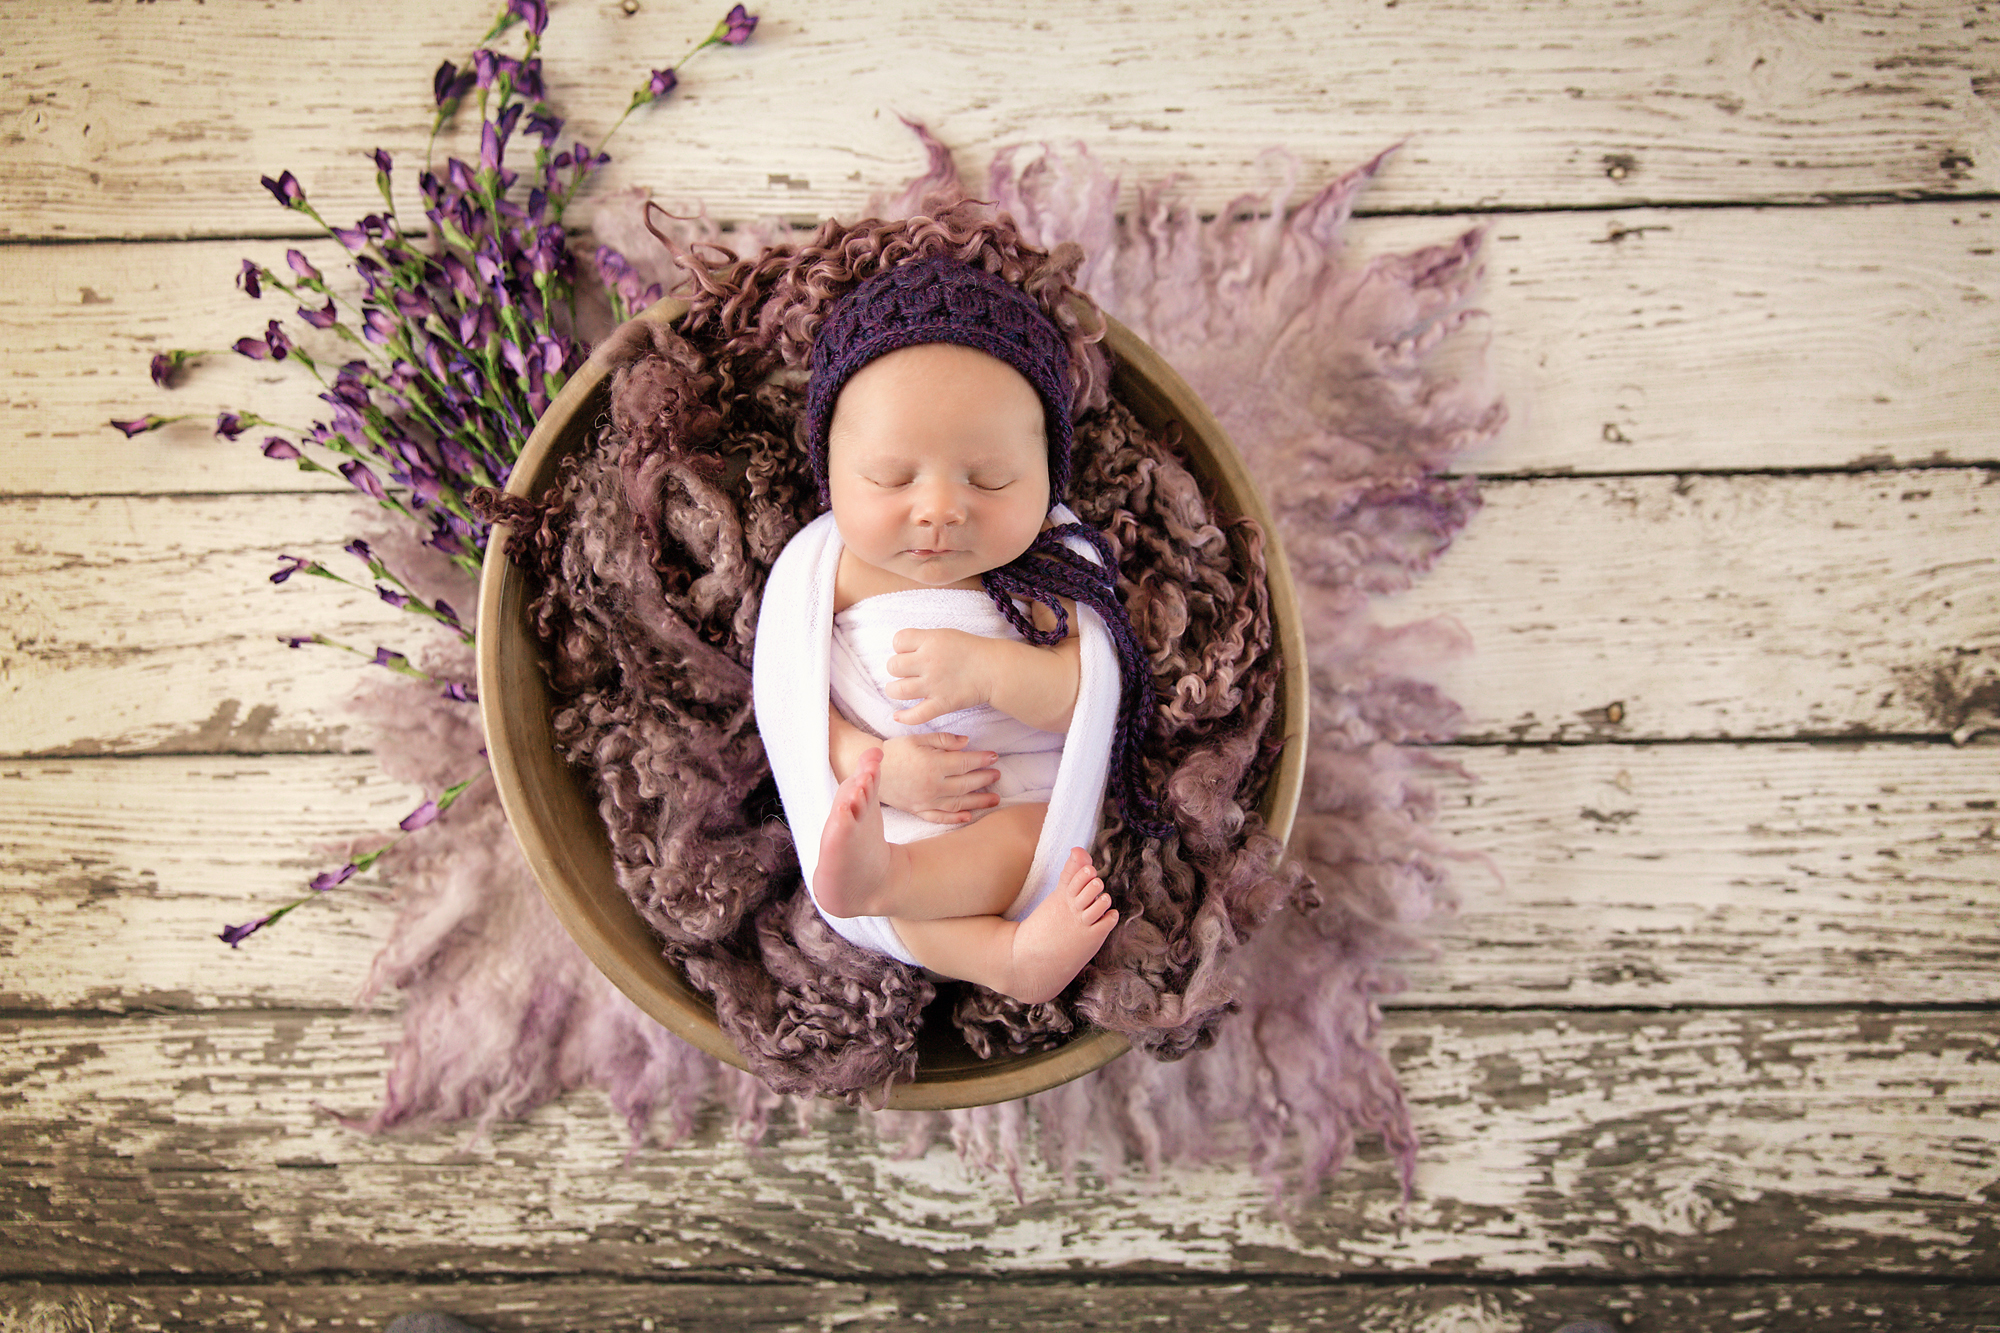 Newborn Photoshoot inspiration ideas. Calgary and Airdrie, Alberta Newborn and Baby photographer - Milashka Photography. Baby girl is posed in a wooden bowl and surrounded by purple flowers and fluff and is wearing a purple hat.